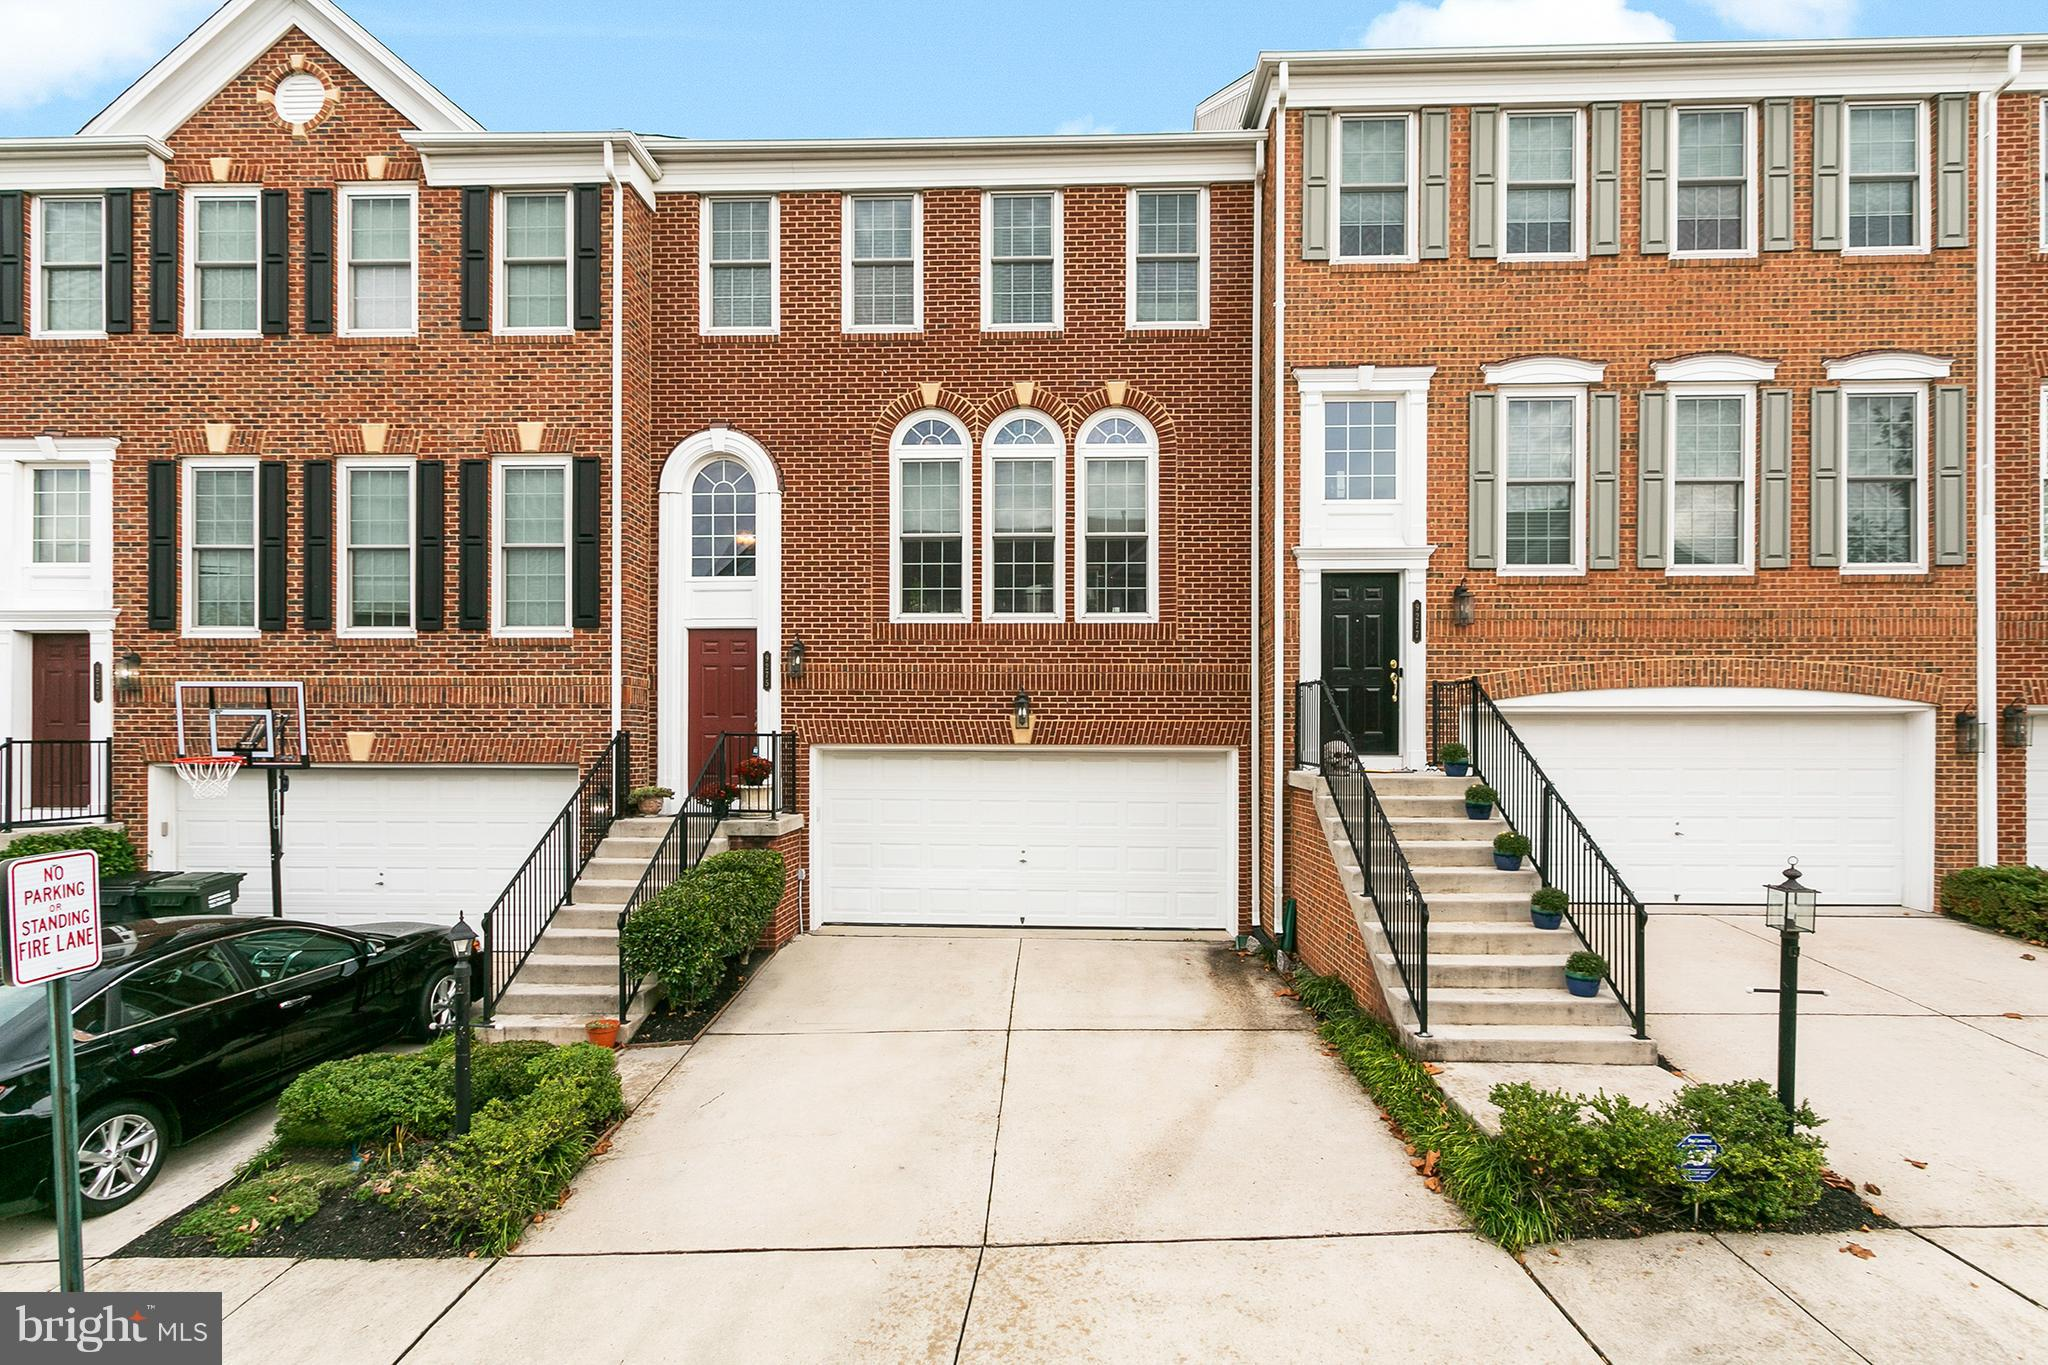 Beautiful brick townhome w/ 2 car garage in Lorton right off of 95! Spacious layout, gleaming hardwoods, huge windows let in tons of natural light. Updated kitchen w/ large island and breakfast bar. Master suite w/ walk in closet. Rear deck overlooks trees and fenced in backyard. Nice, quiet community. Great location for commuters!